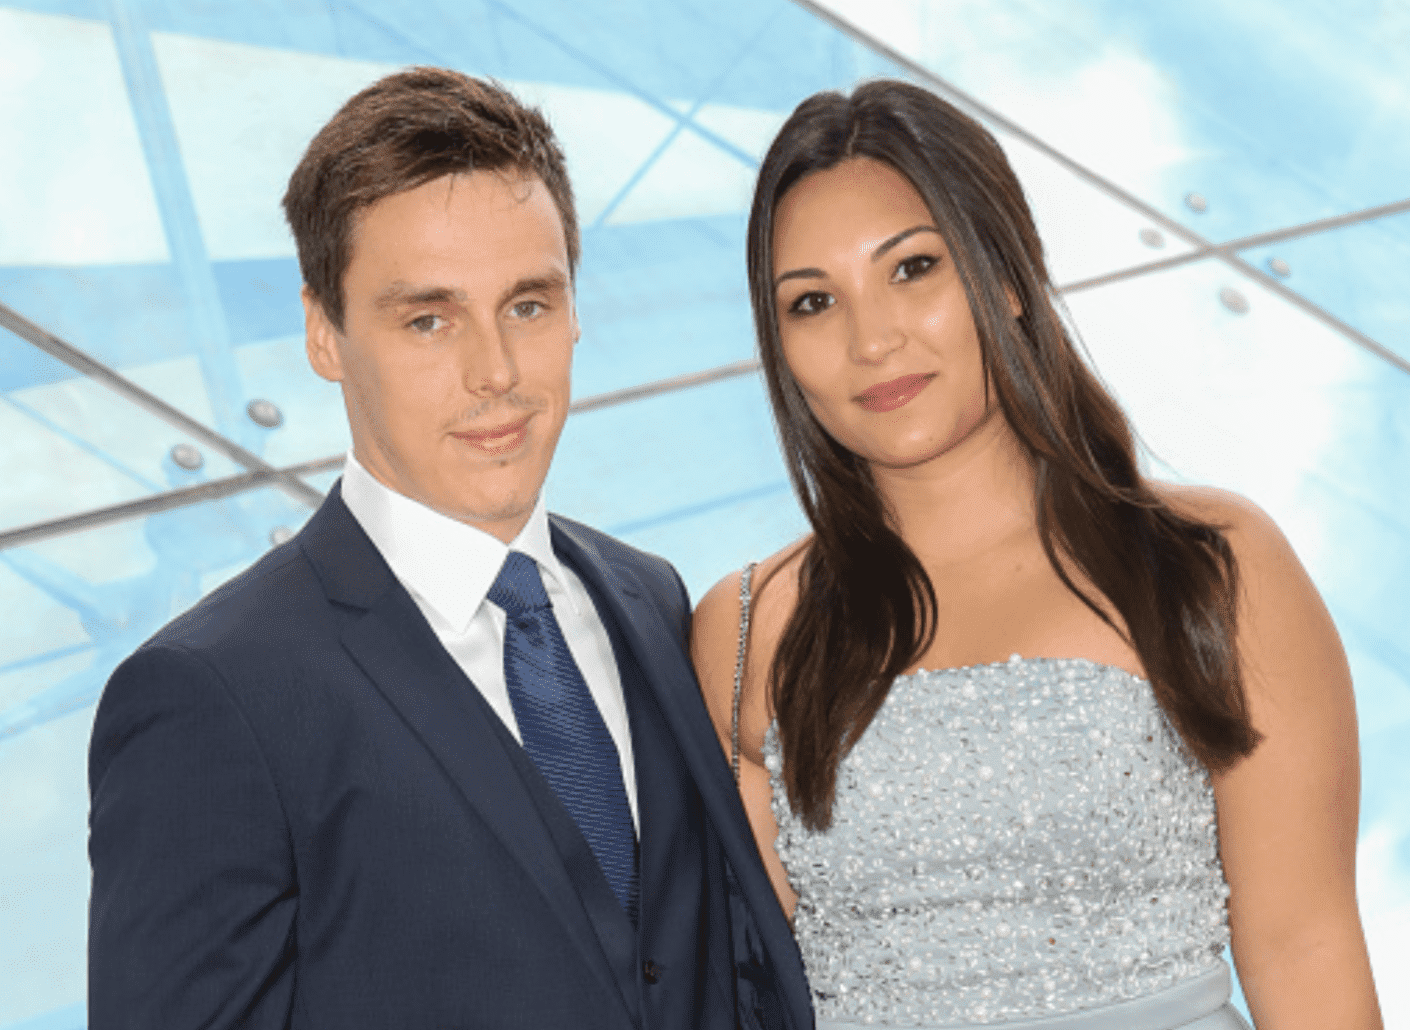 Louis Ducruet andMarie Chevallier attend the opening ceremony for the 58th Monte Carlo TV Festival, June 2018, Monaco. |Photo: Getty Images.